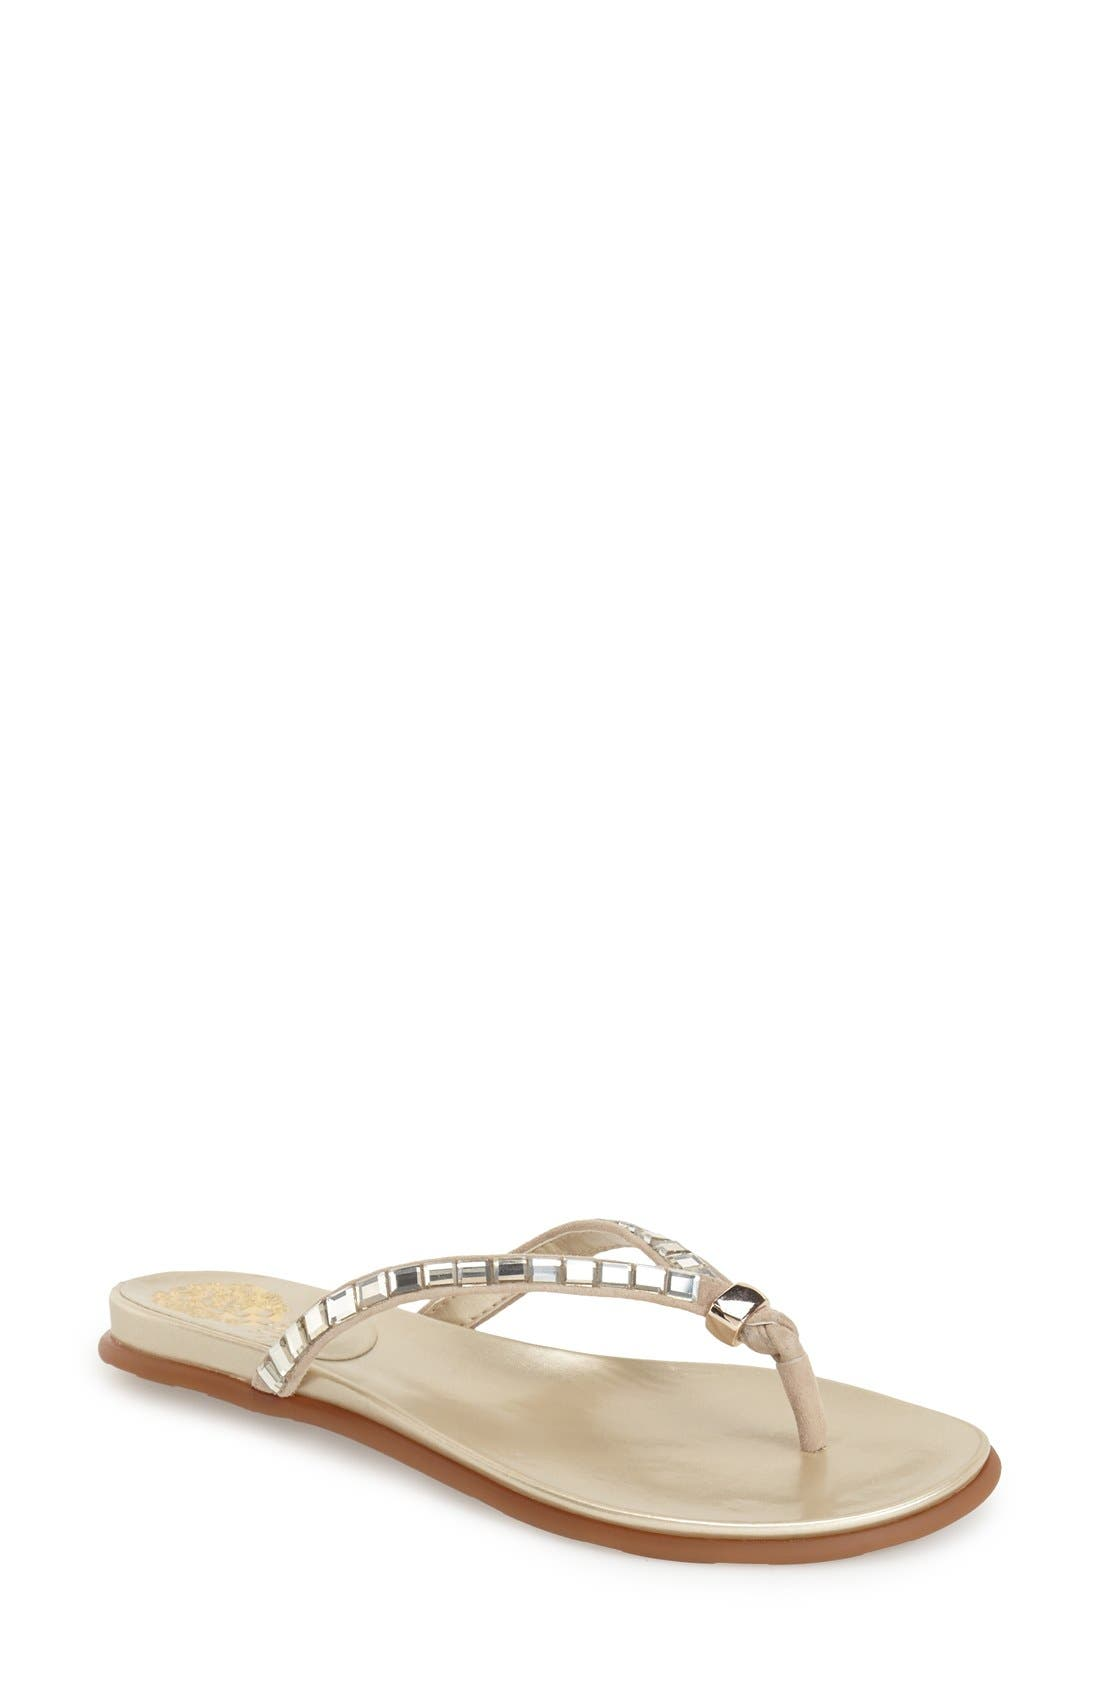 Alternate Image 1 Selected - Vince Camuto 'Ellita' Flat Sandal (Women)